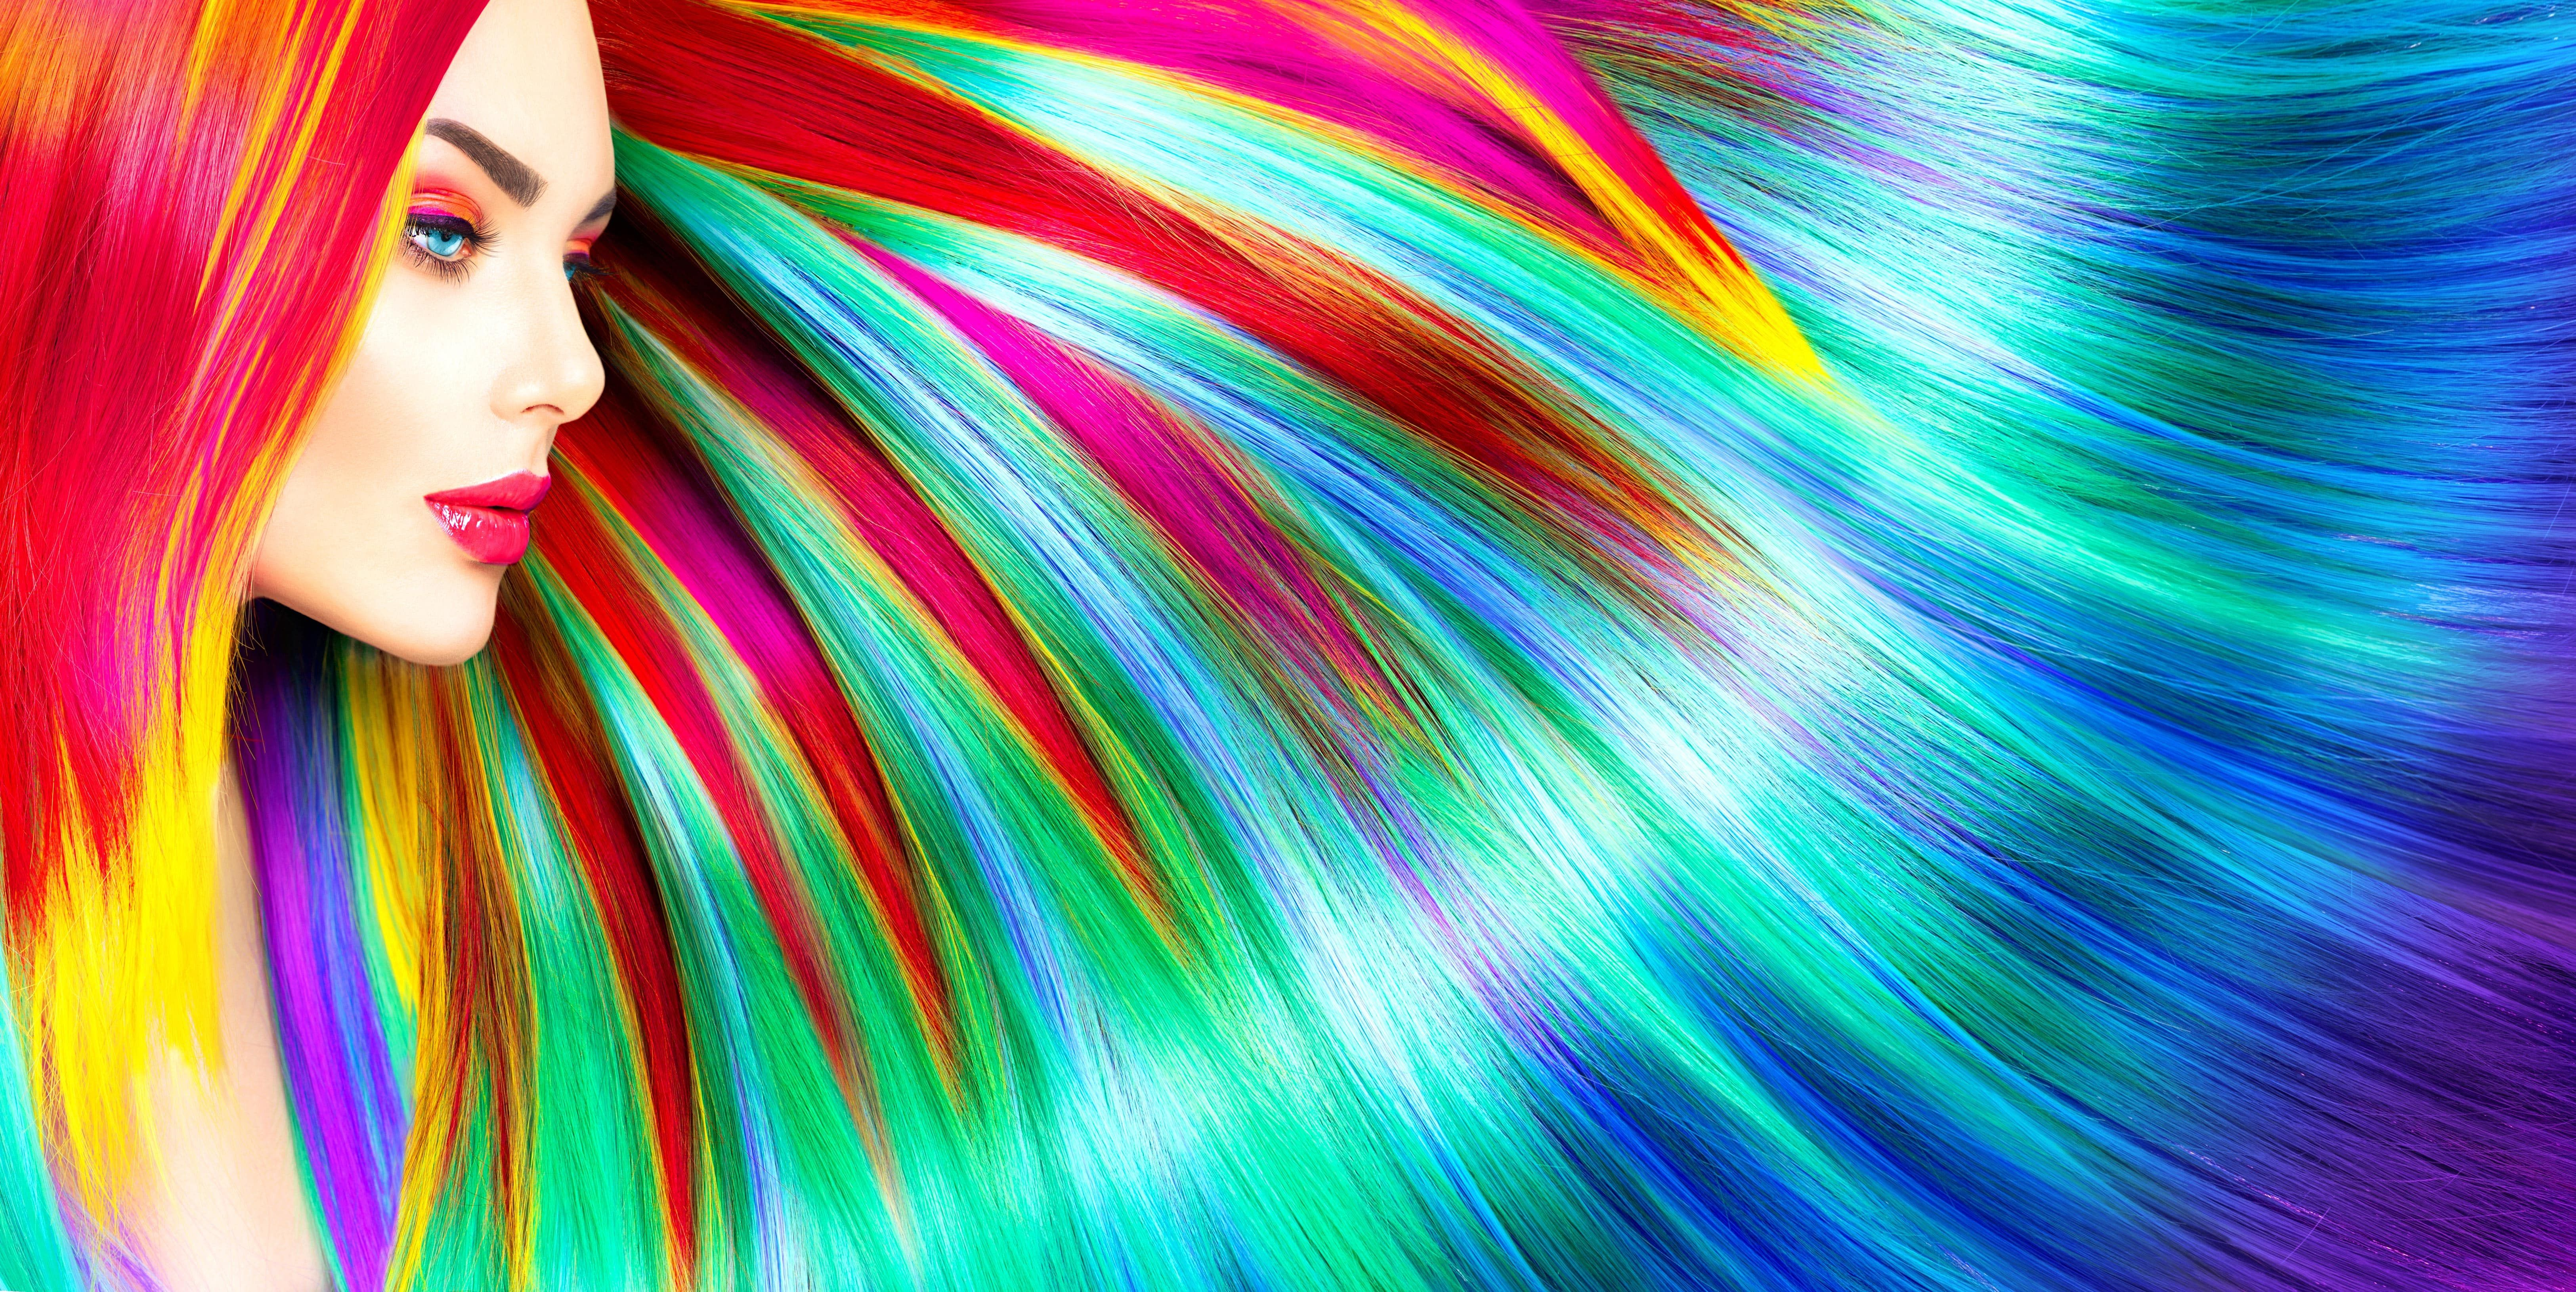 Rainbow Colorful Girl Hairs 6k Wallpaper Backgrounds Girl